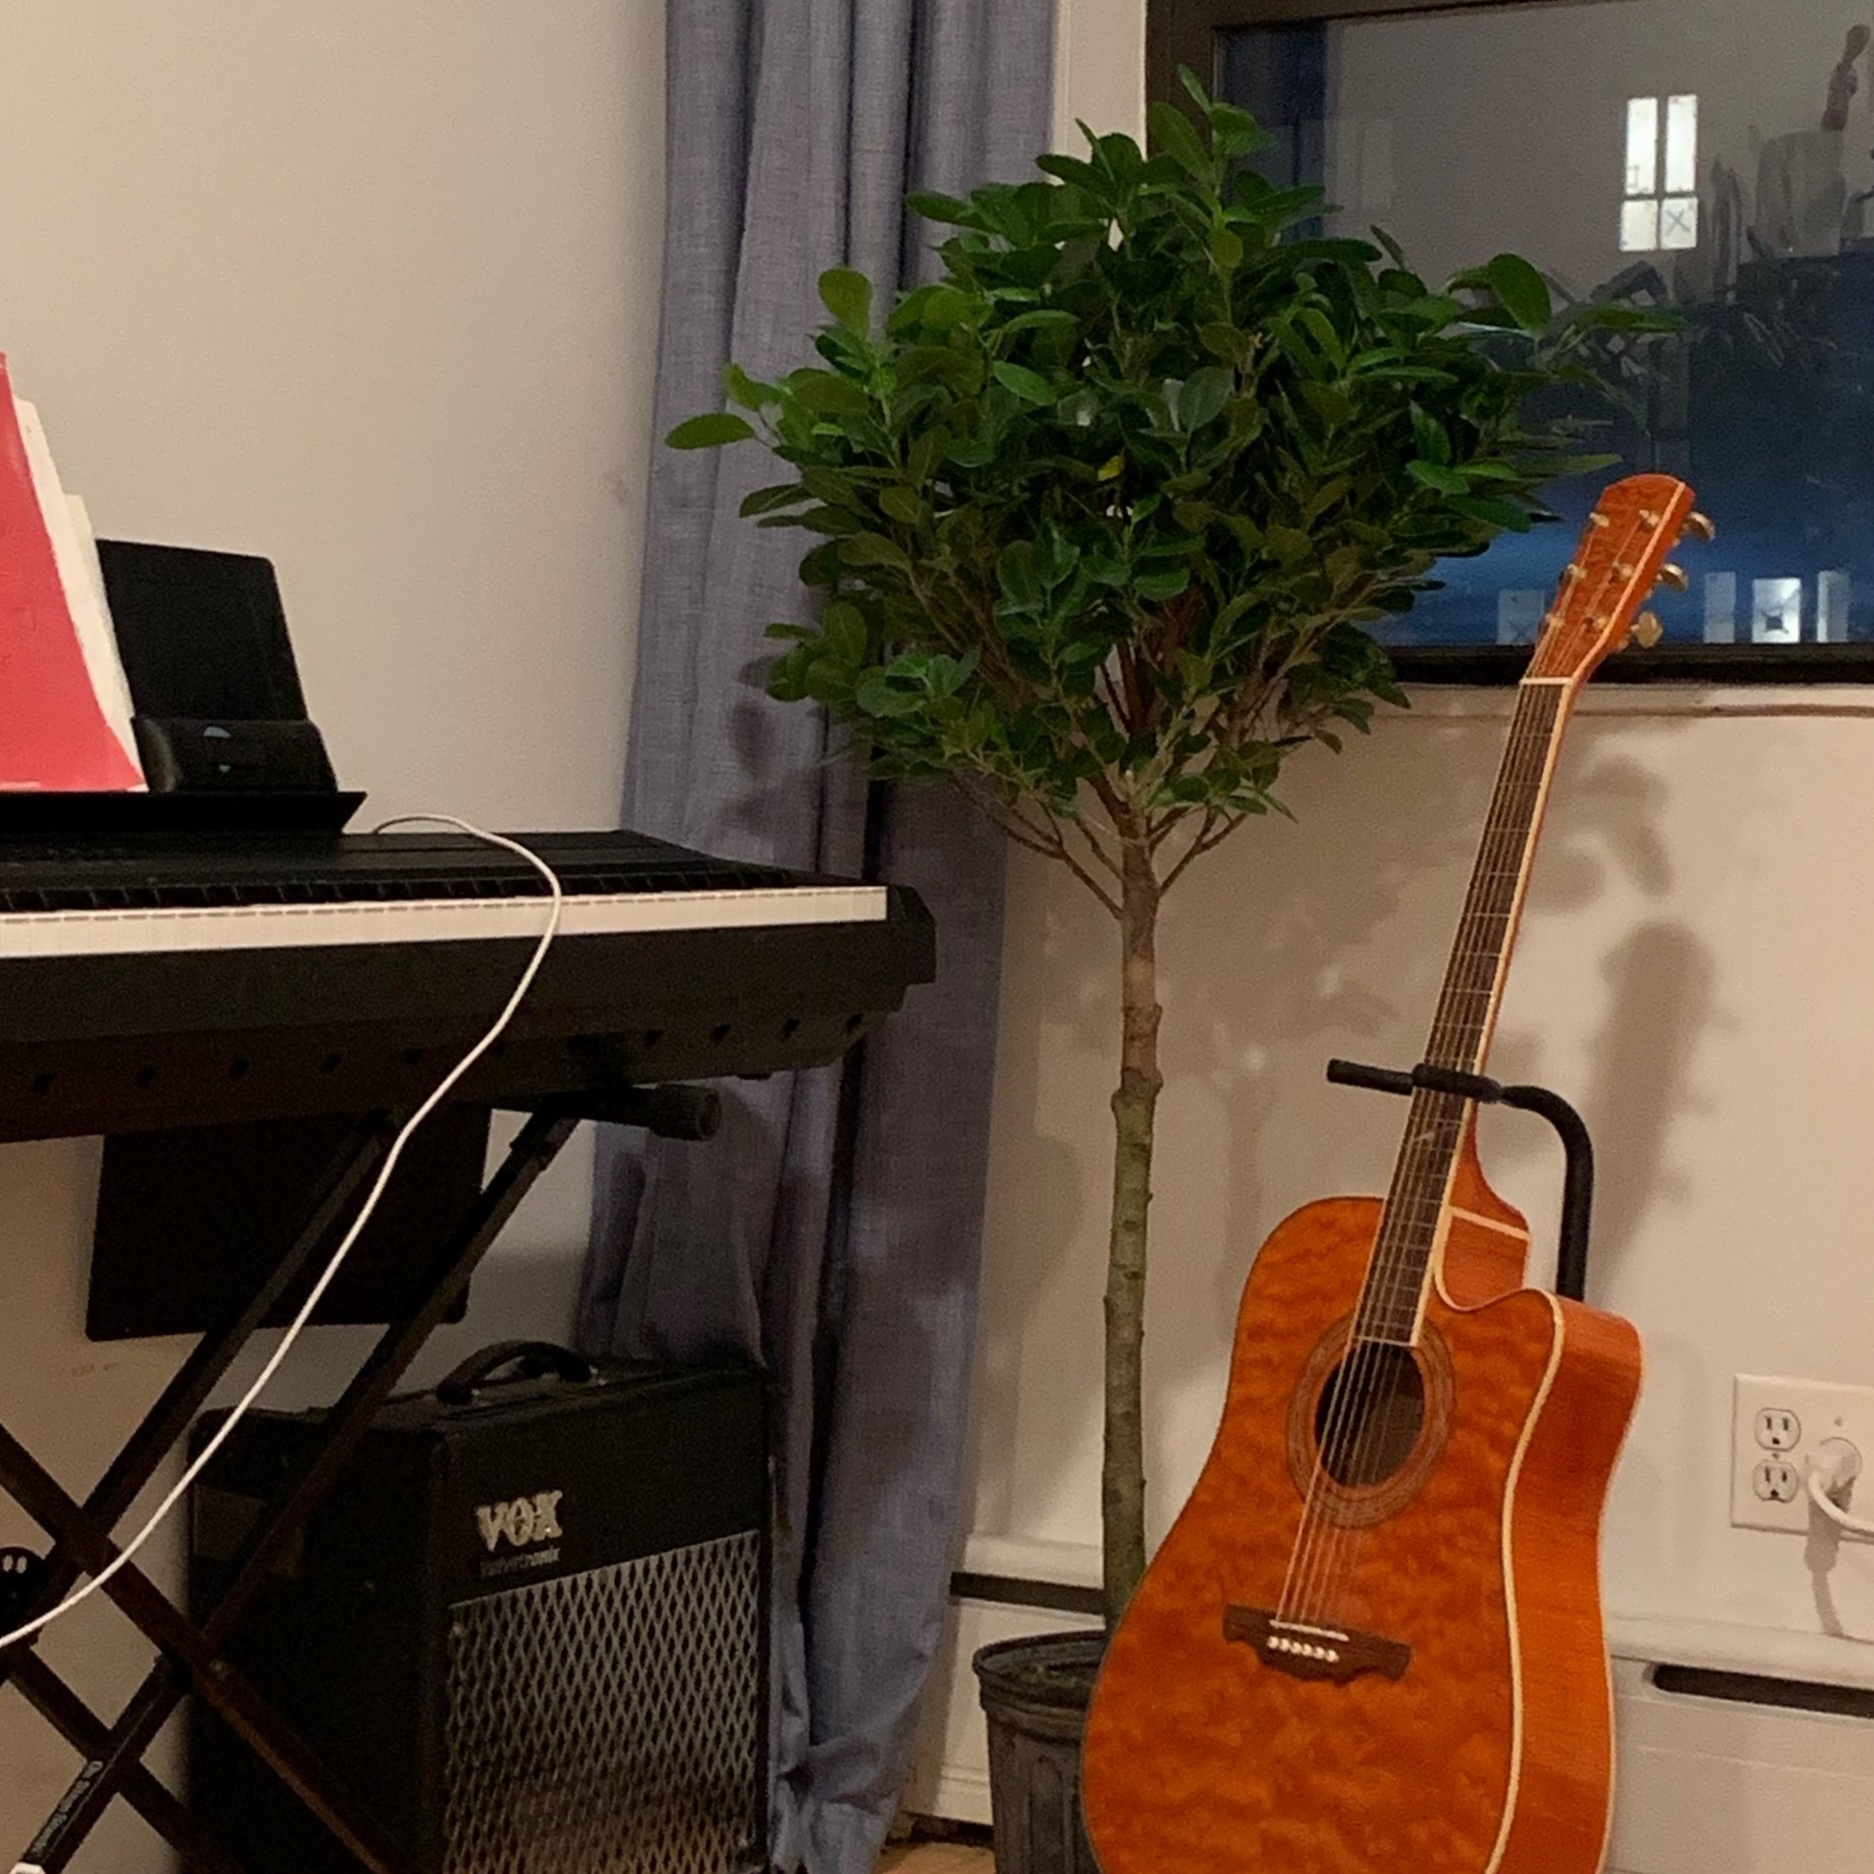 Our tree loves music.